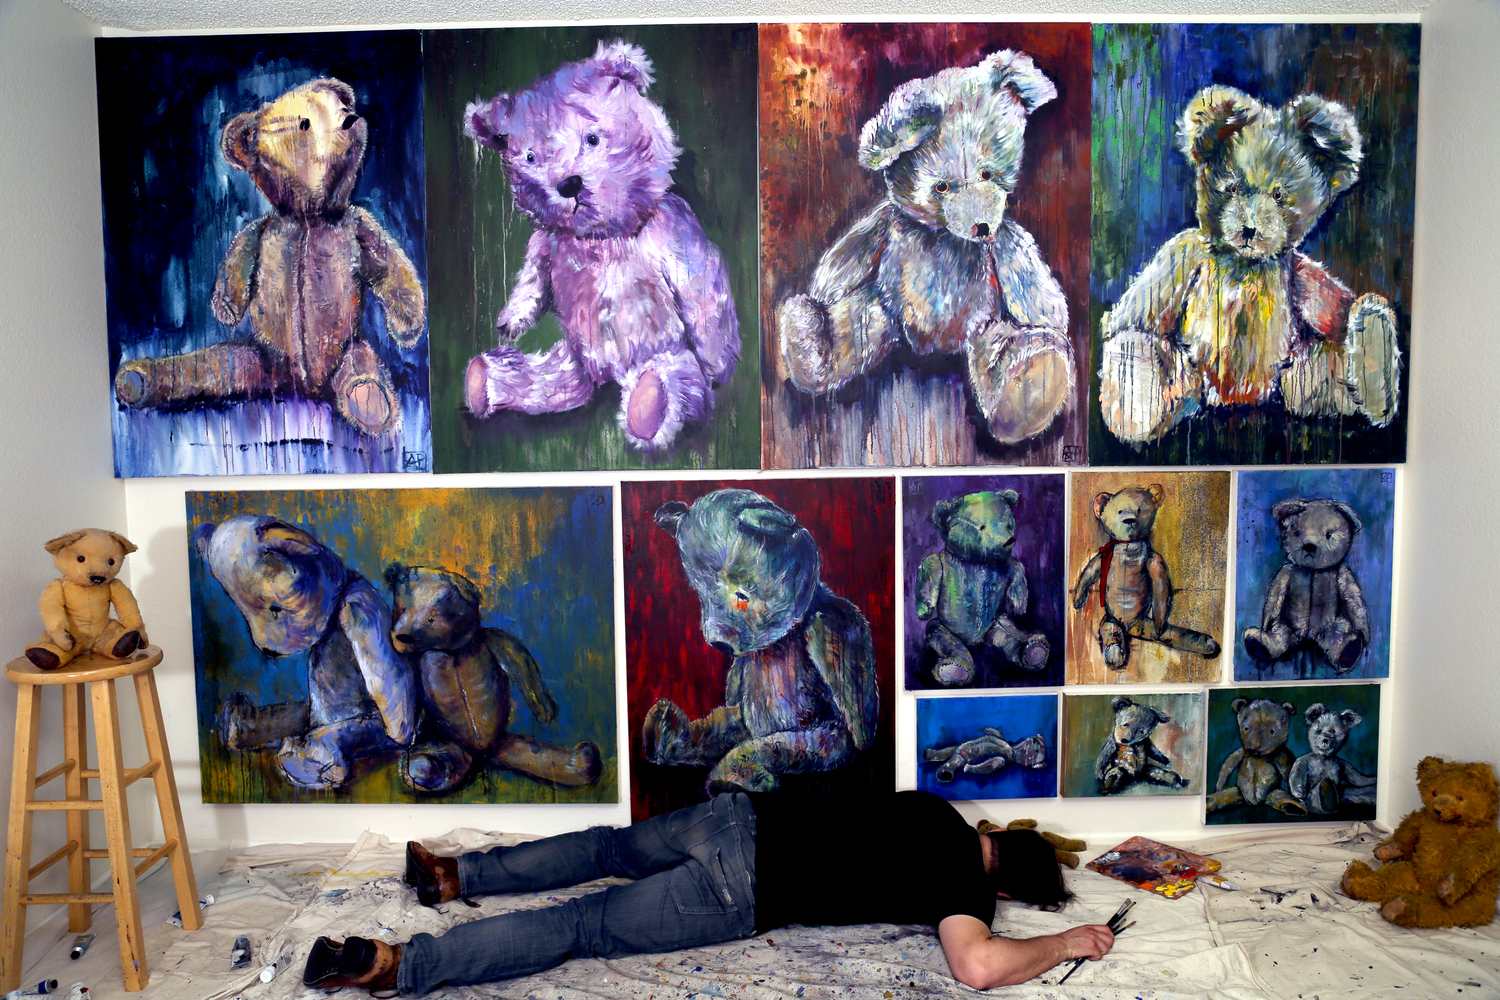 THE BEARS (SOLD) /  click for full image...